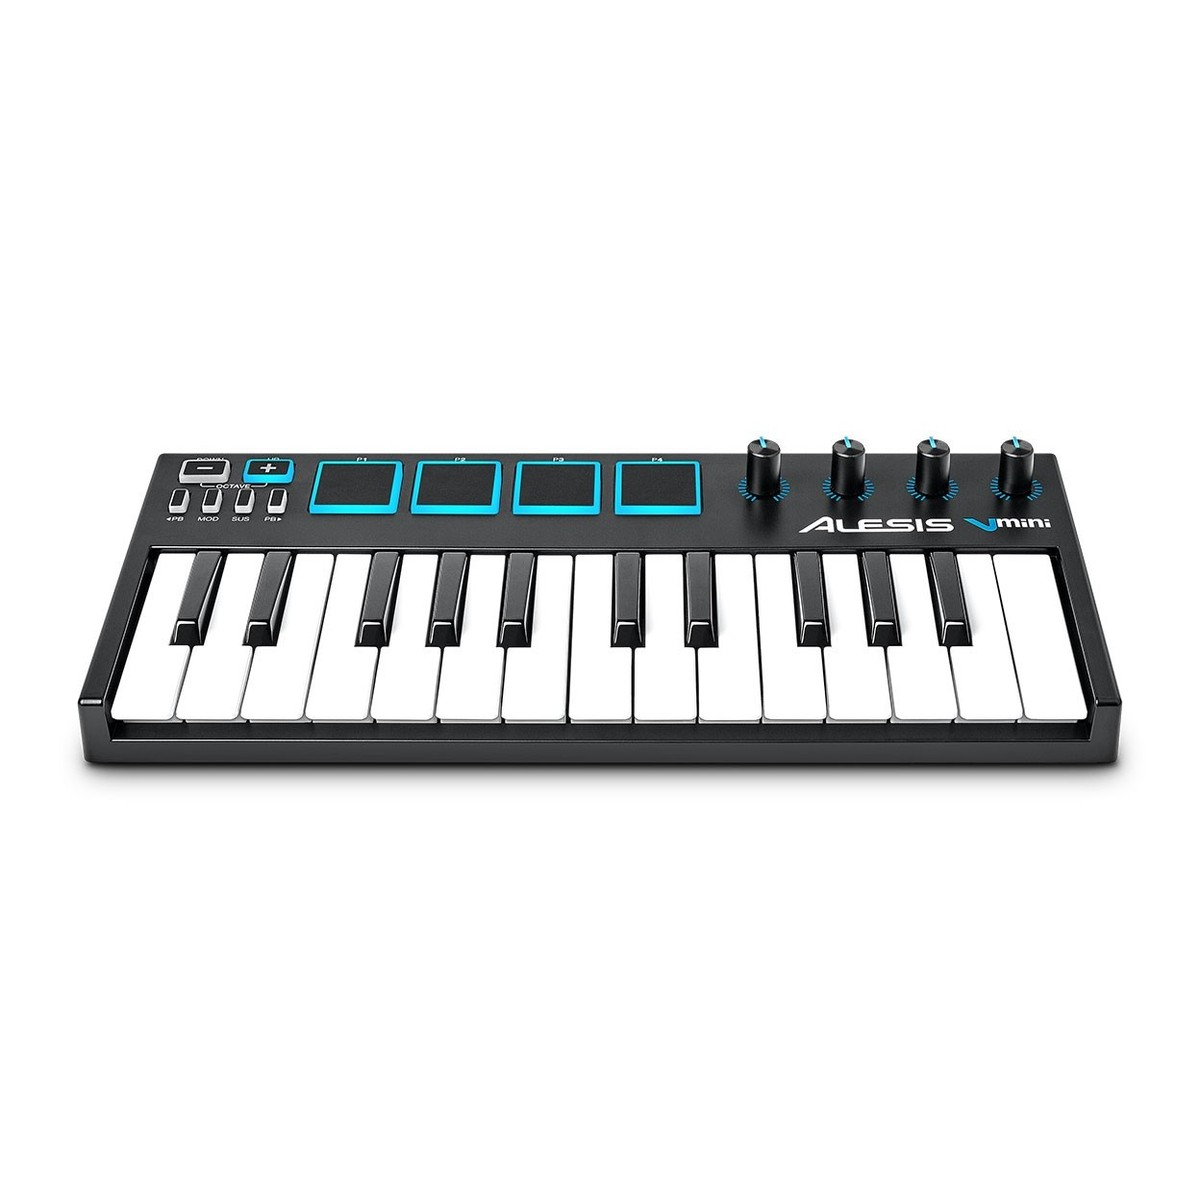 alesis v mini 25 key midi keyboard controller at gear4music. Black Bedroom Furniture Sets. Home Design Ideas